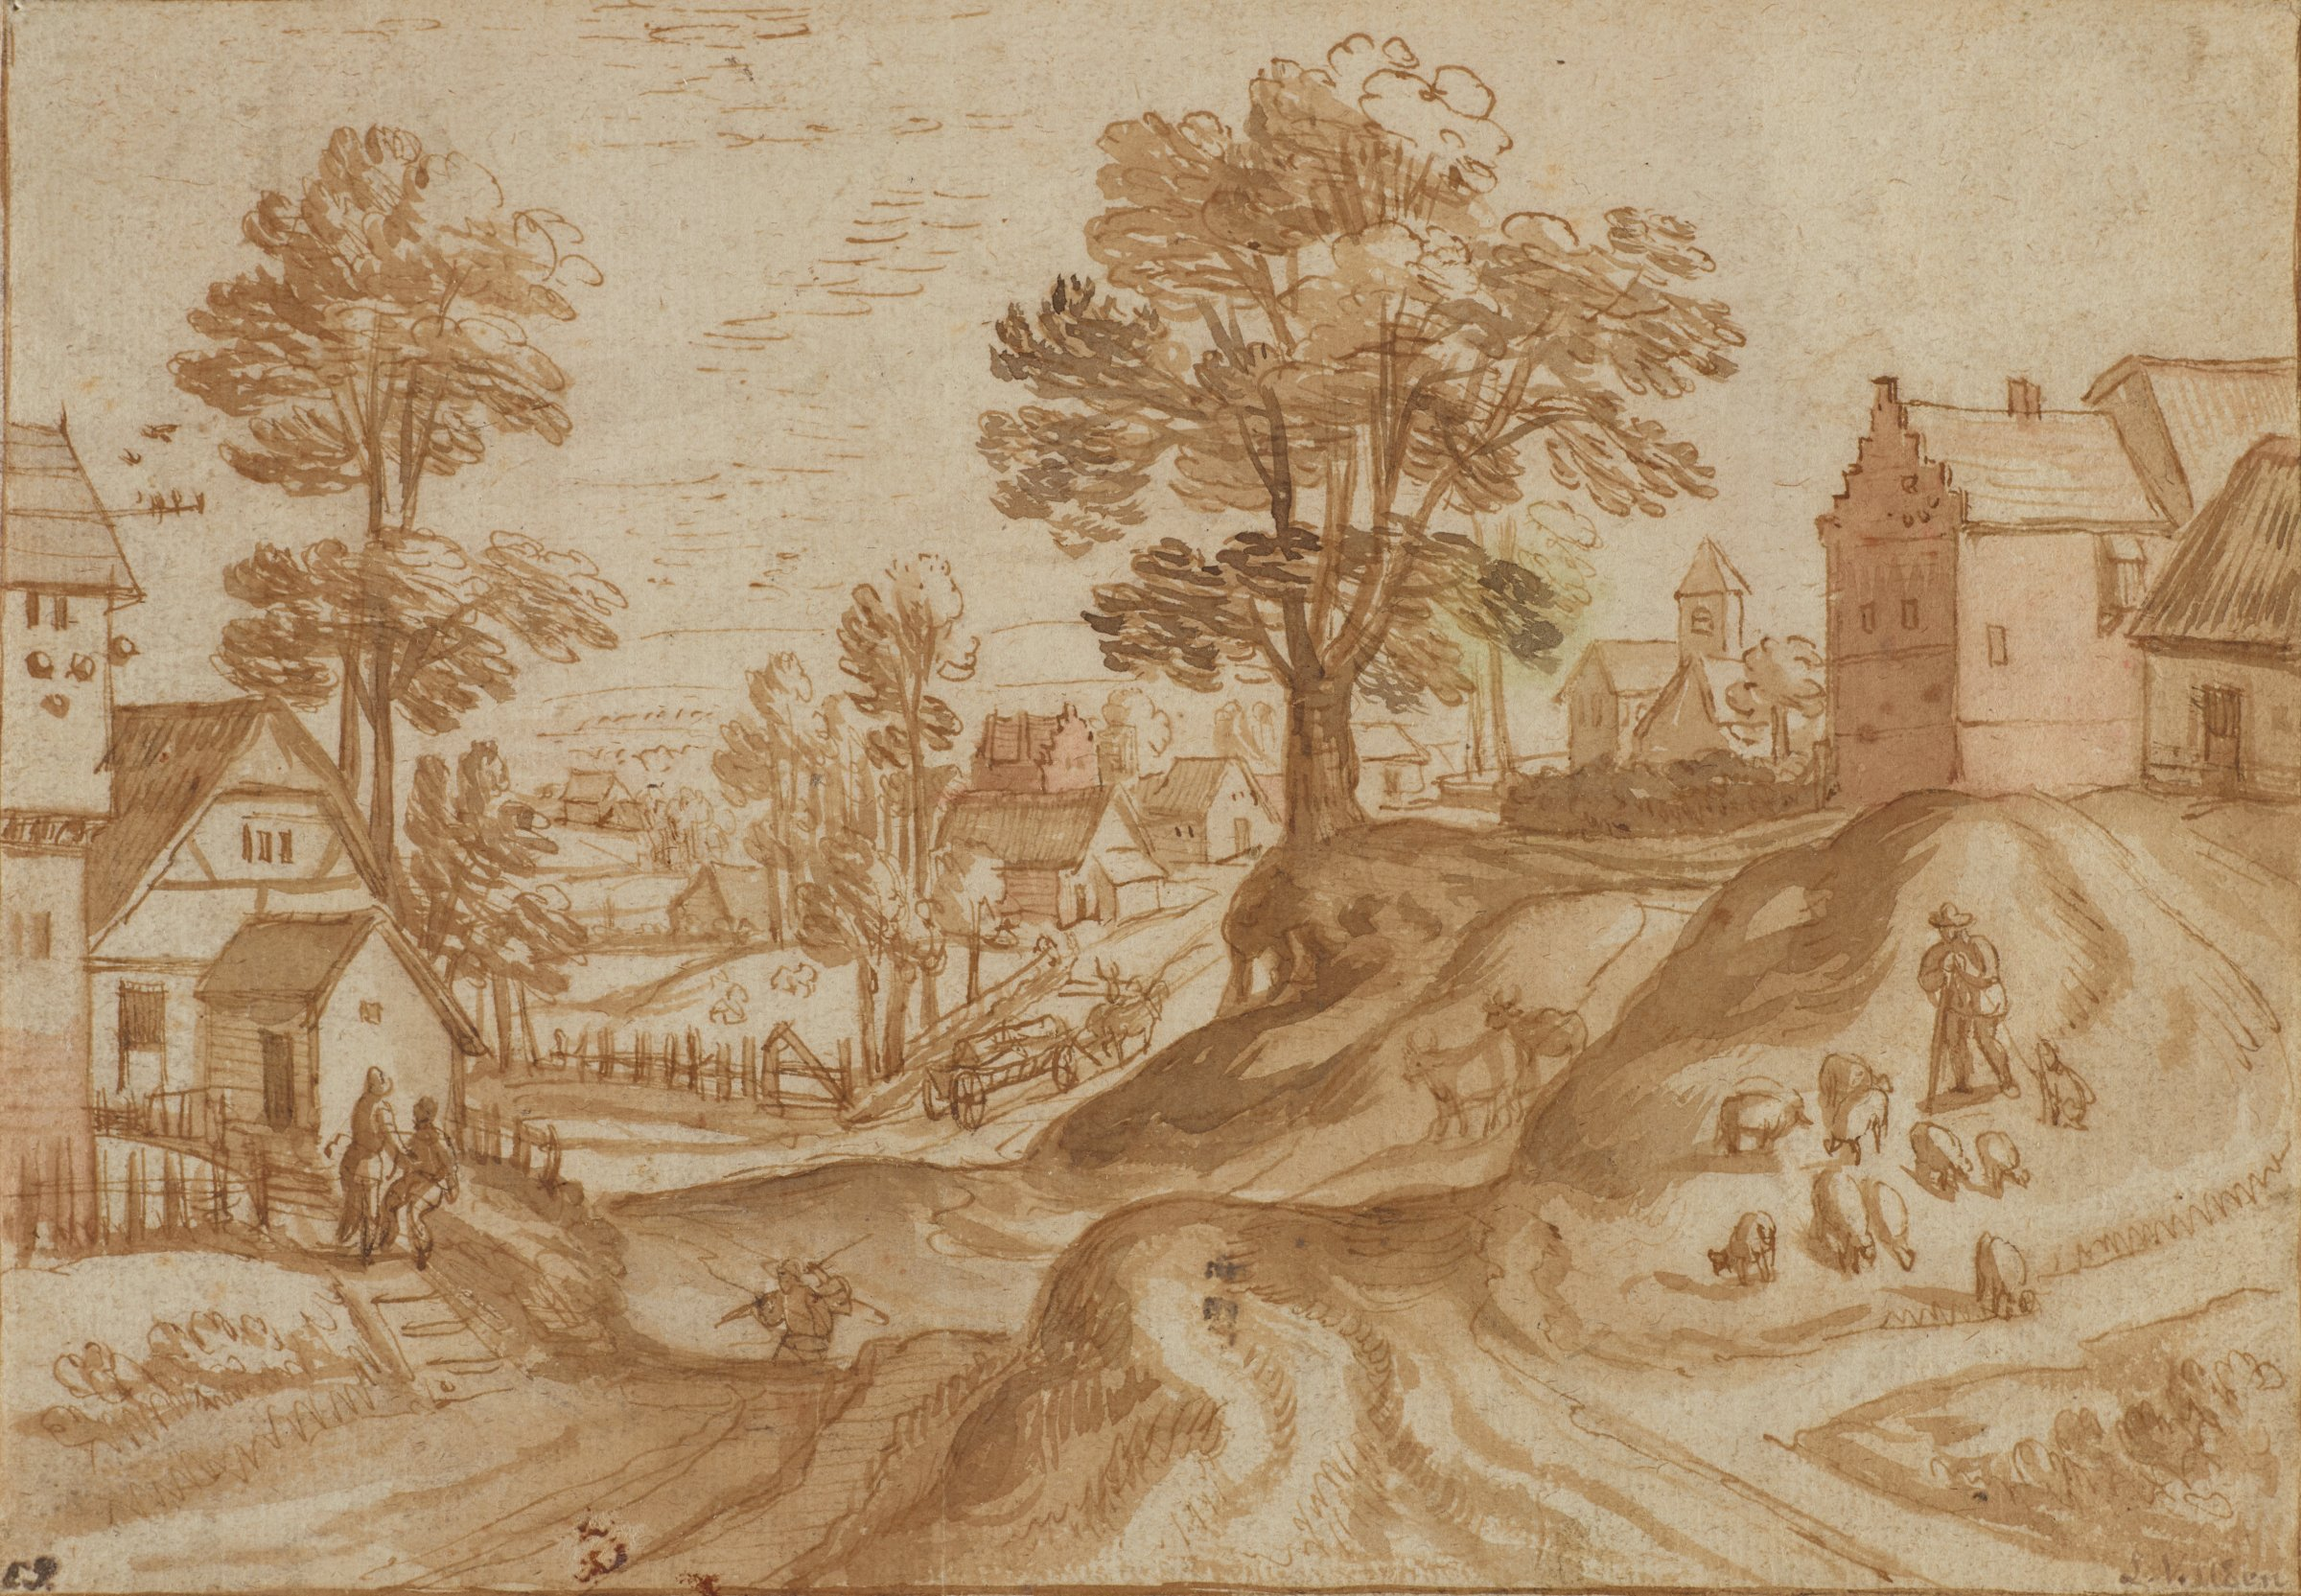 Scene of a village dispersed among a hilly landscape. A flock of sheep graze the right hillside. Villagers are seen engaged in various activities. The tree near the center of the composition contains traces of green and pink wash.